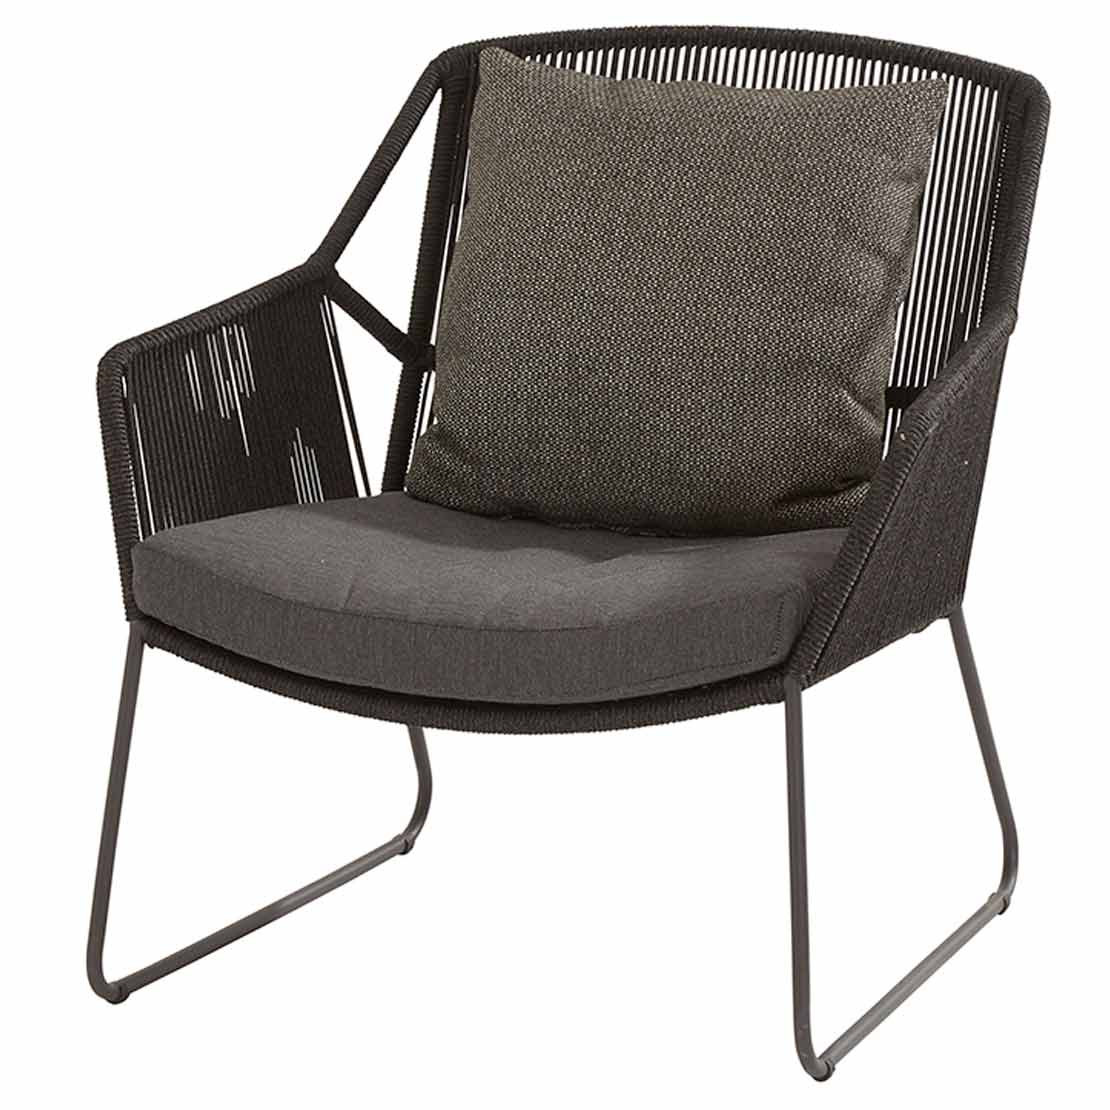 Accor living chair with 2 cushions